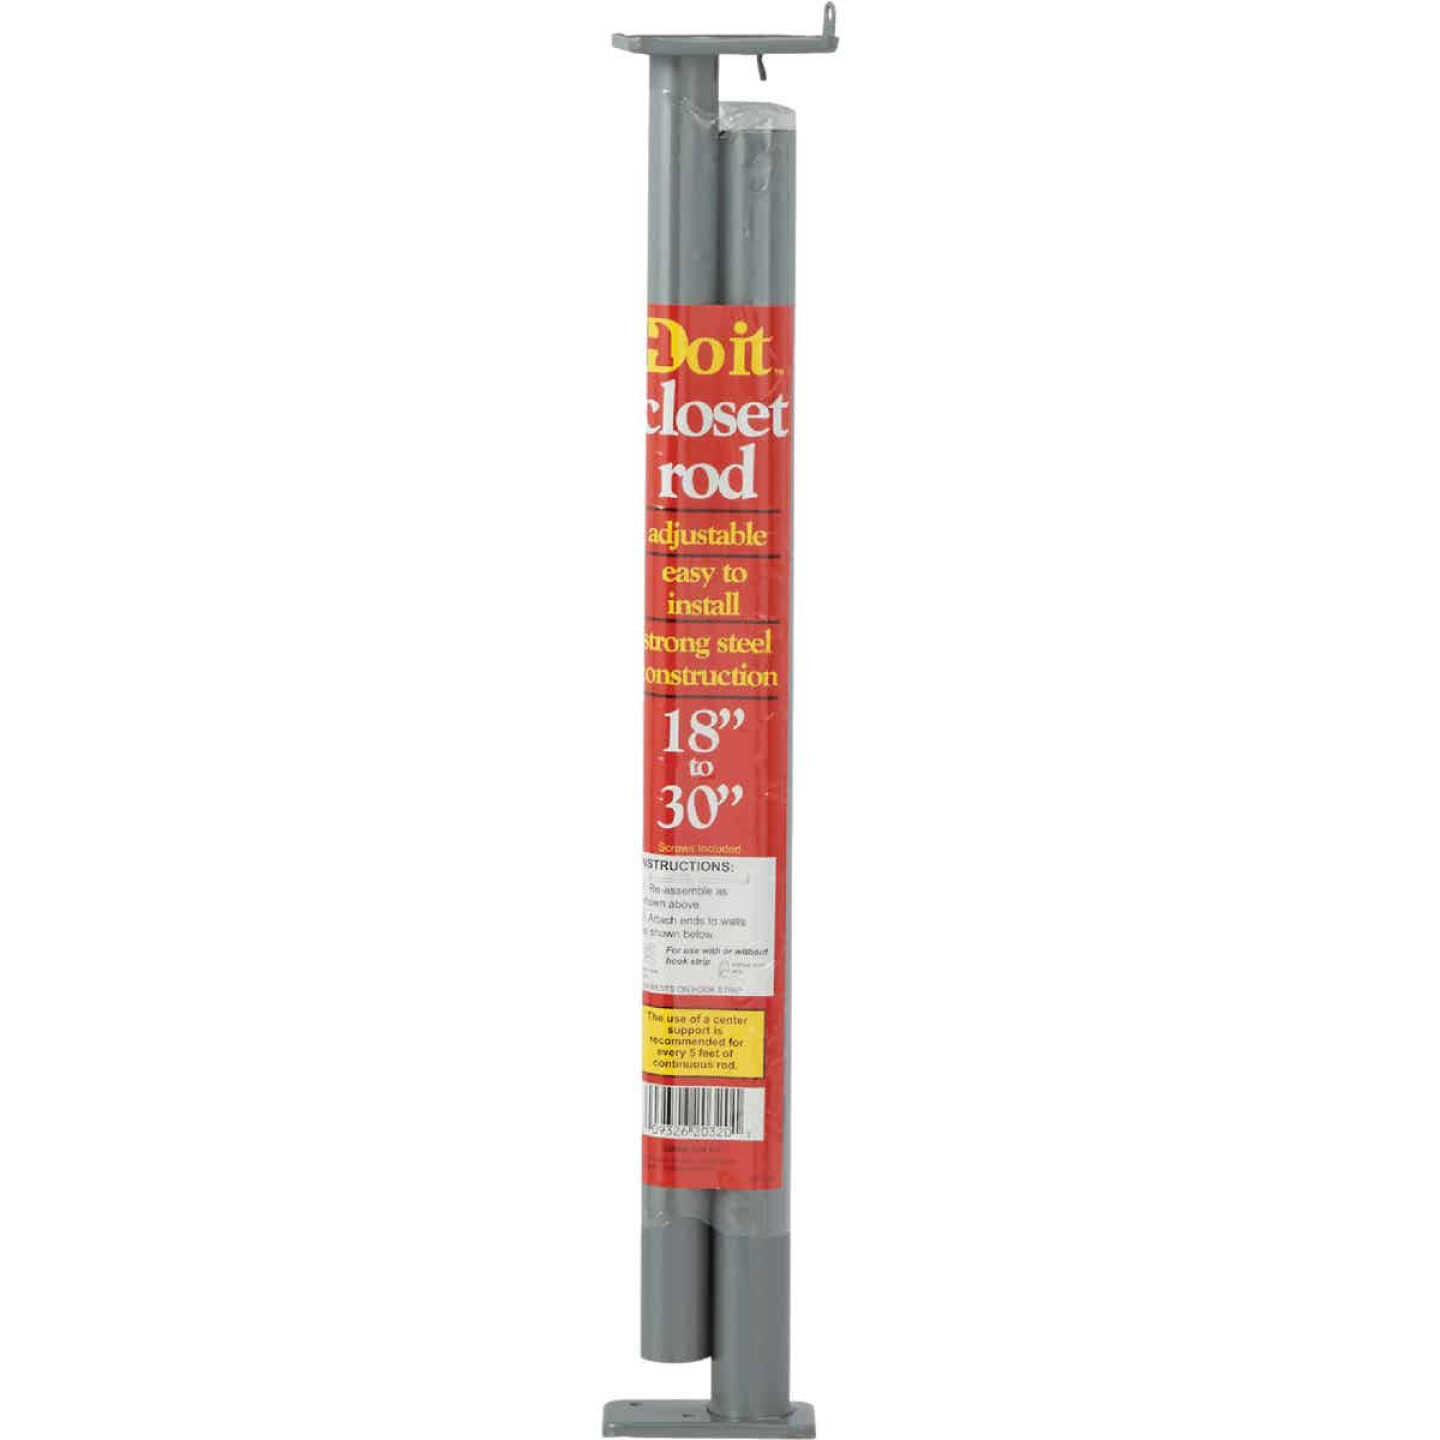 Do it 18 In. to 30 In. Adjustable Closet Rod, Lustra Image 2